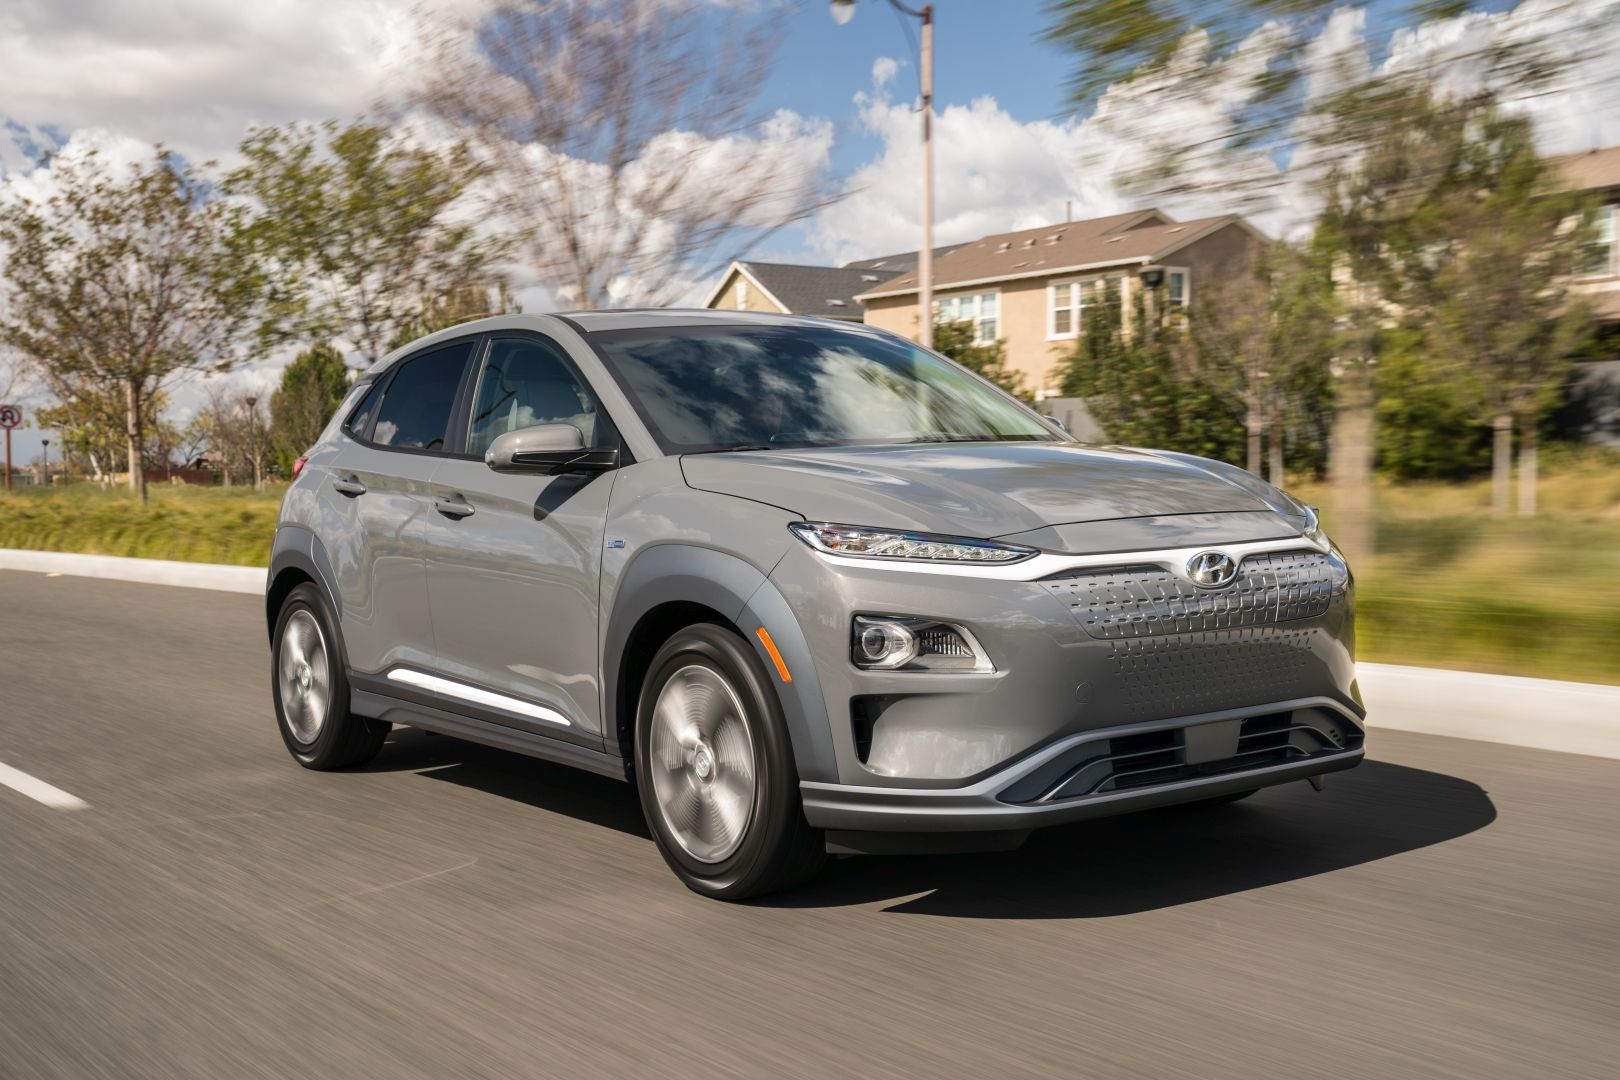 Advance auto sells hyundai auto parts online and in local stores all over the country. HYUNDAI Kona Electric specs & photos - 2018, 2019, 2020